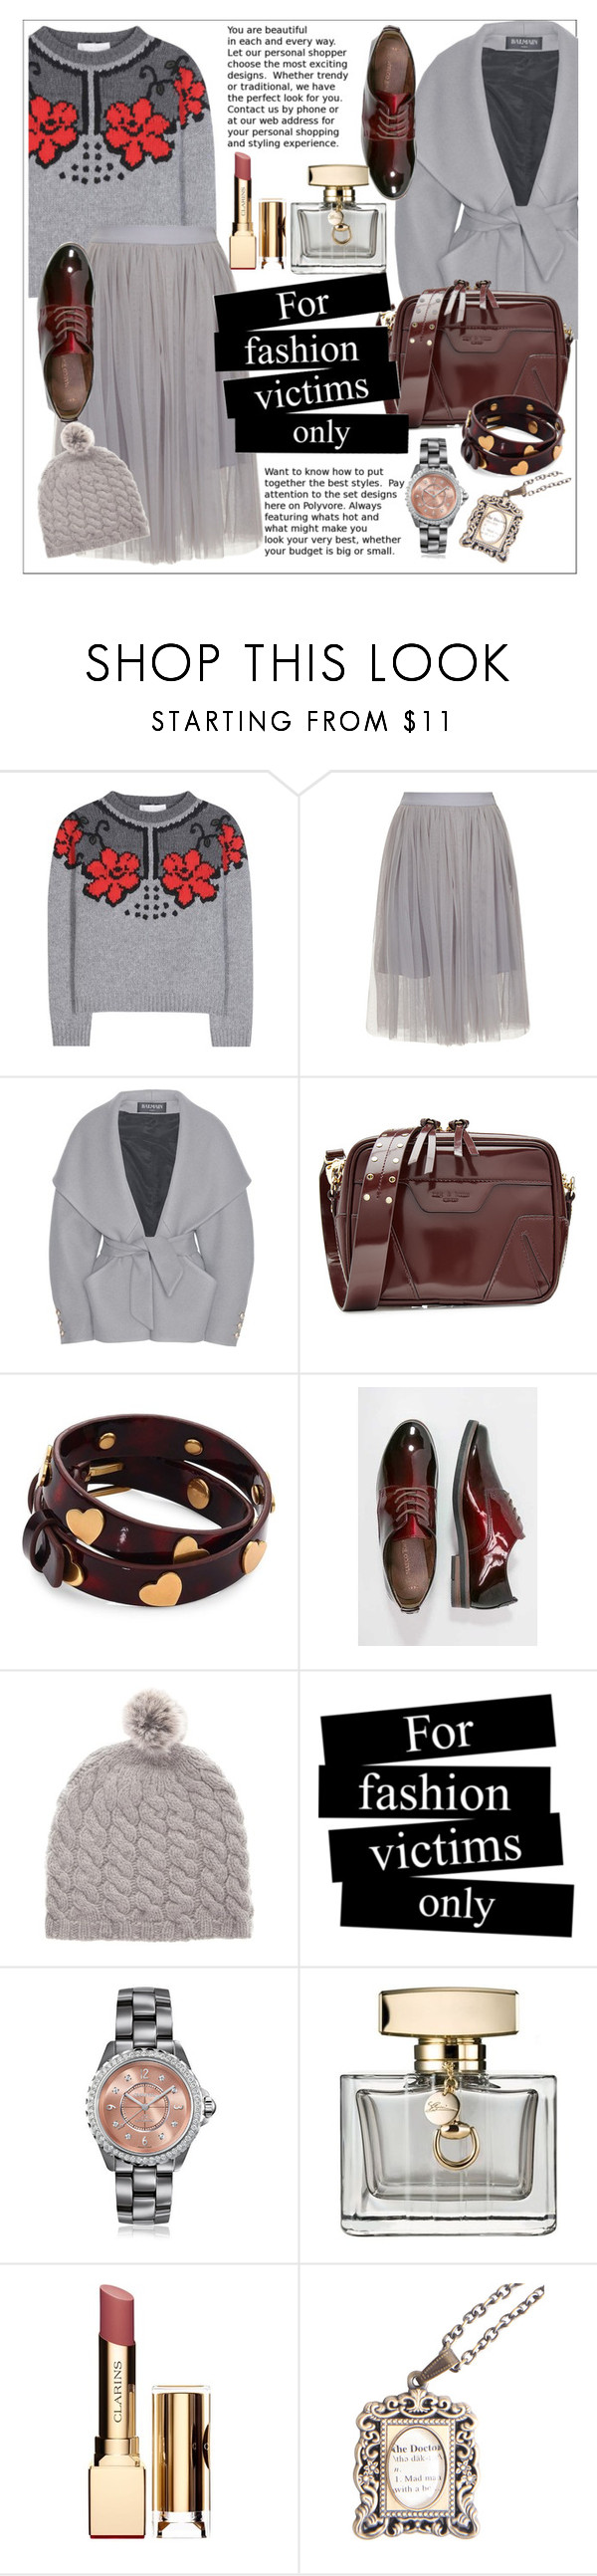 """""""Grey for fashion victims"""" by ceci-alva on Polyvore featuring STELLA McCARTNEY, Balmain, rag & bone, Tory Burch, Marco Tozzi, HENRY CHRIST, Chanel, Gucci and Clarins"""